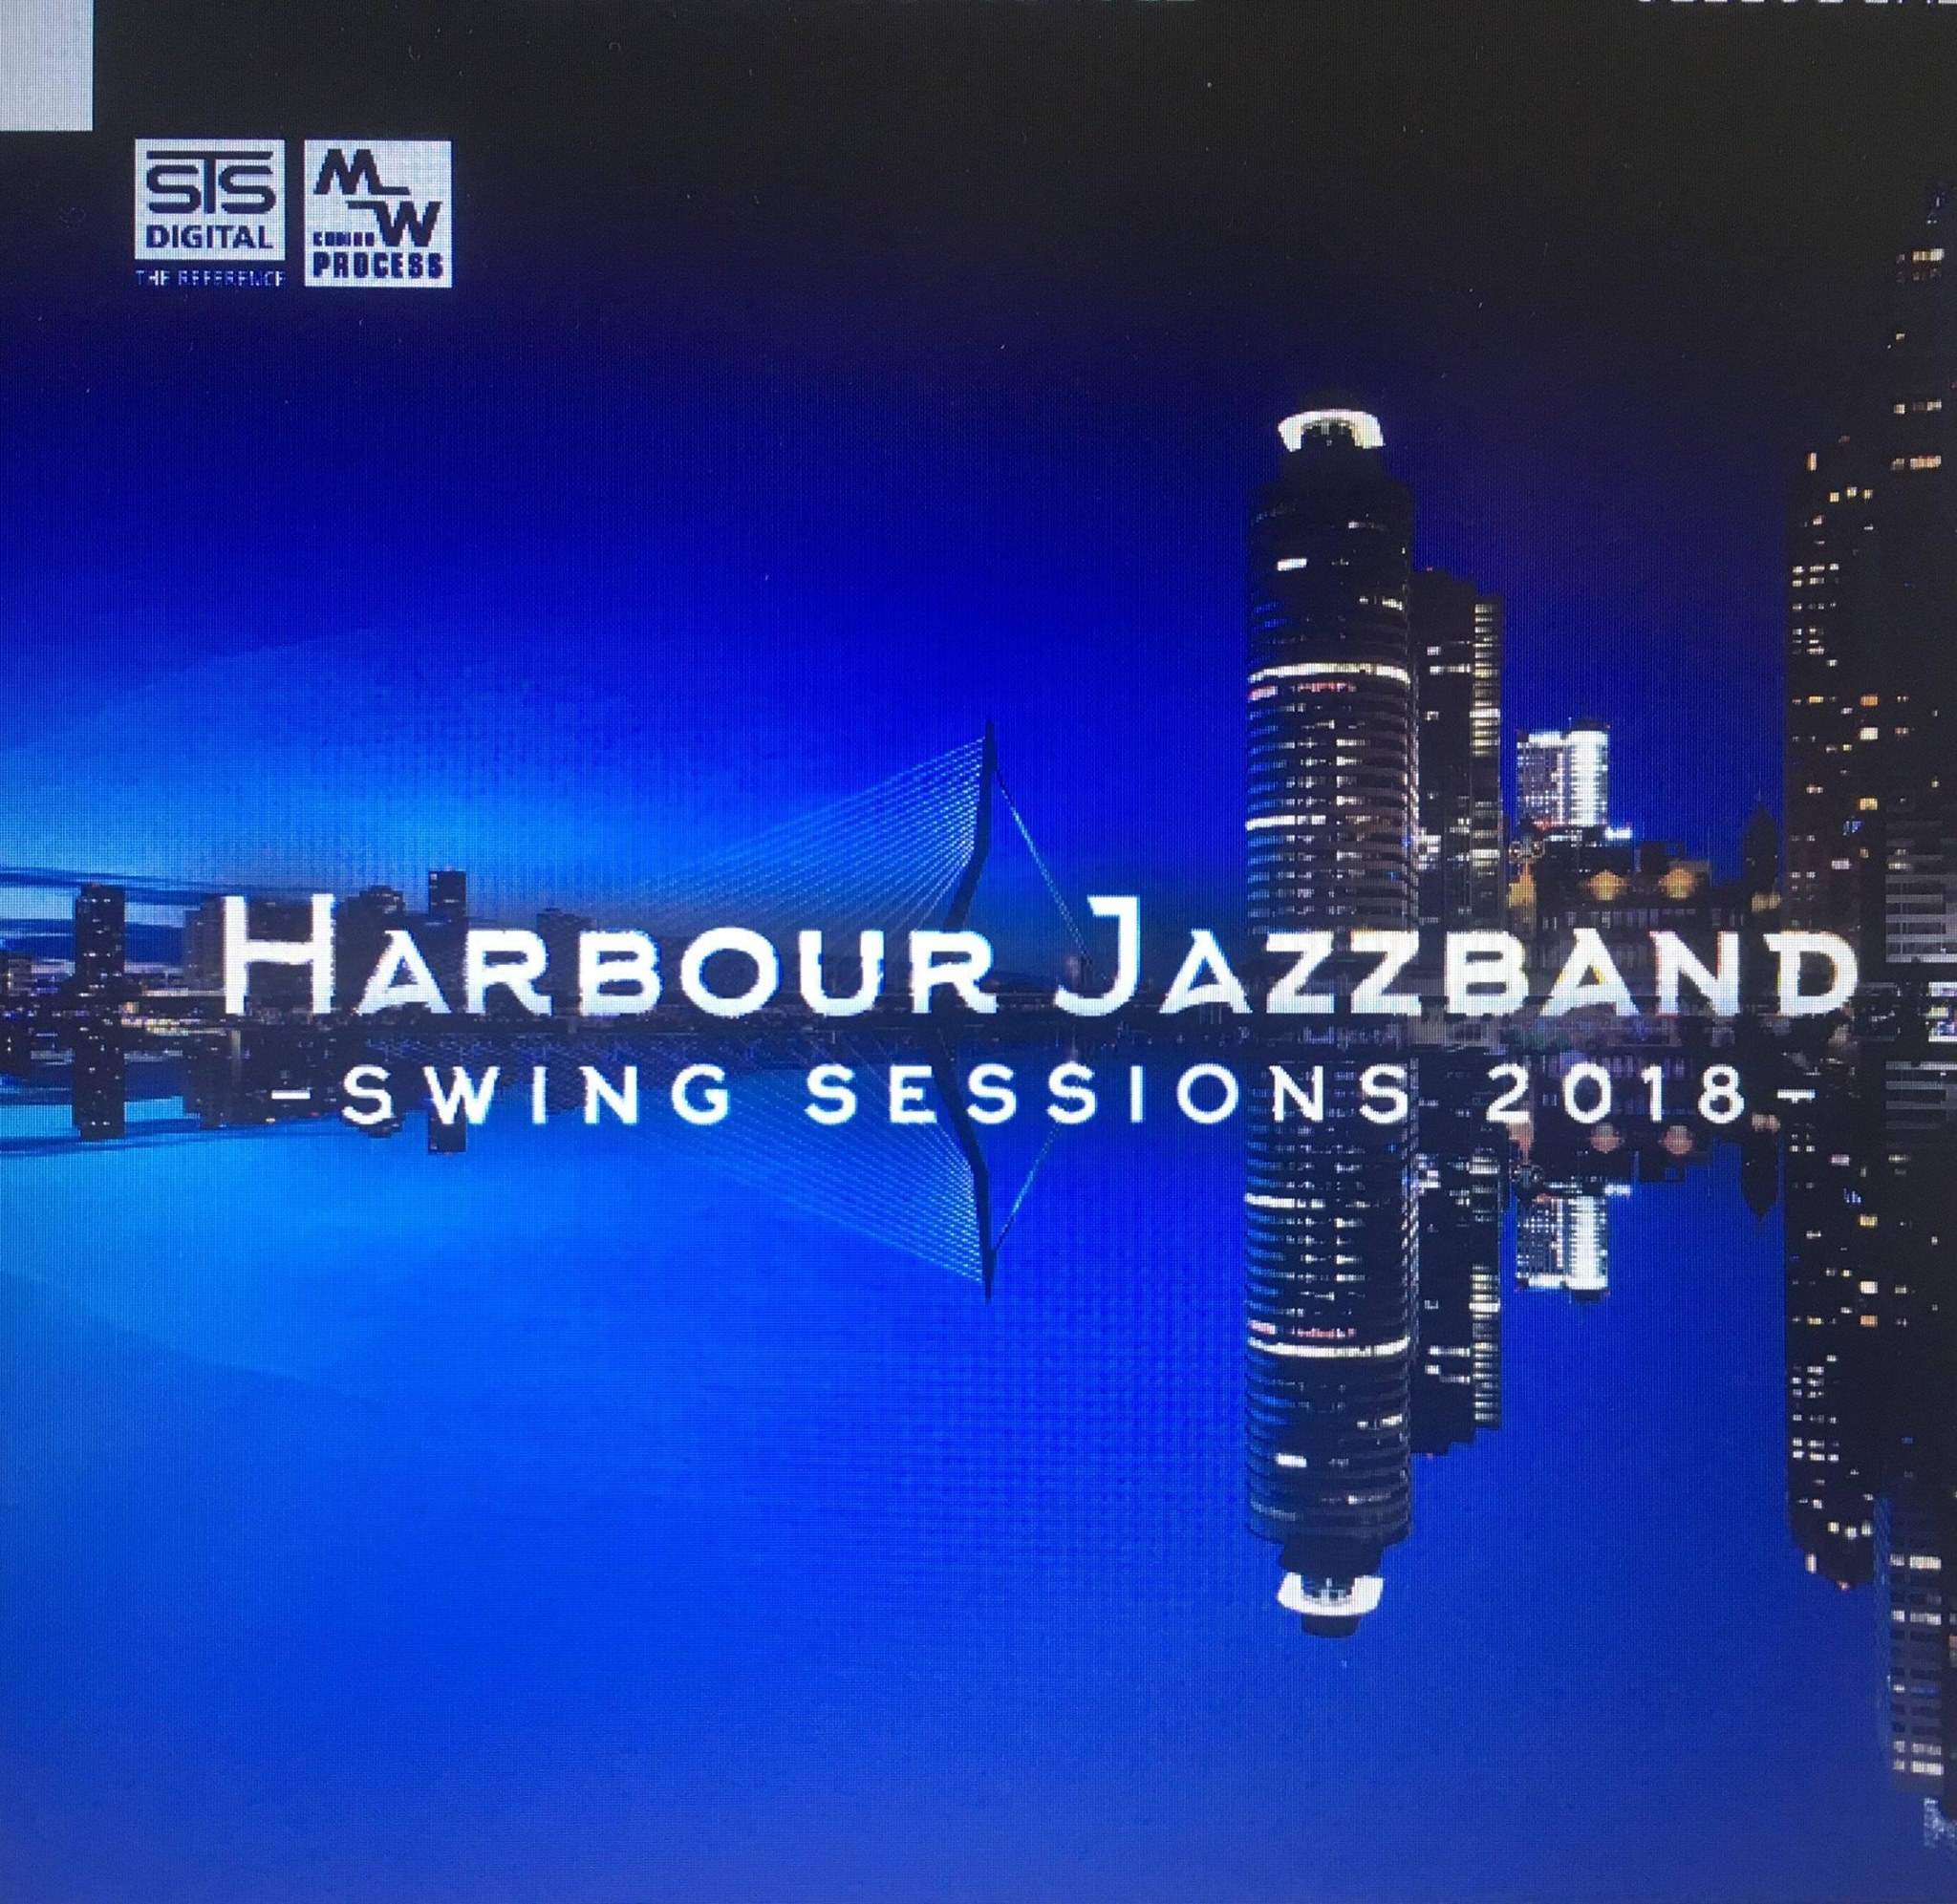 STS Digital - HARBOUR JAZZ BAND - Jazz Sessions 2018